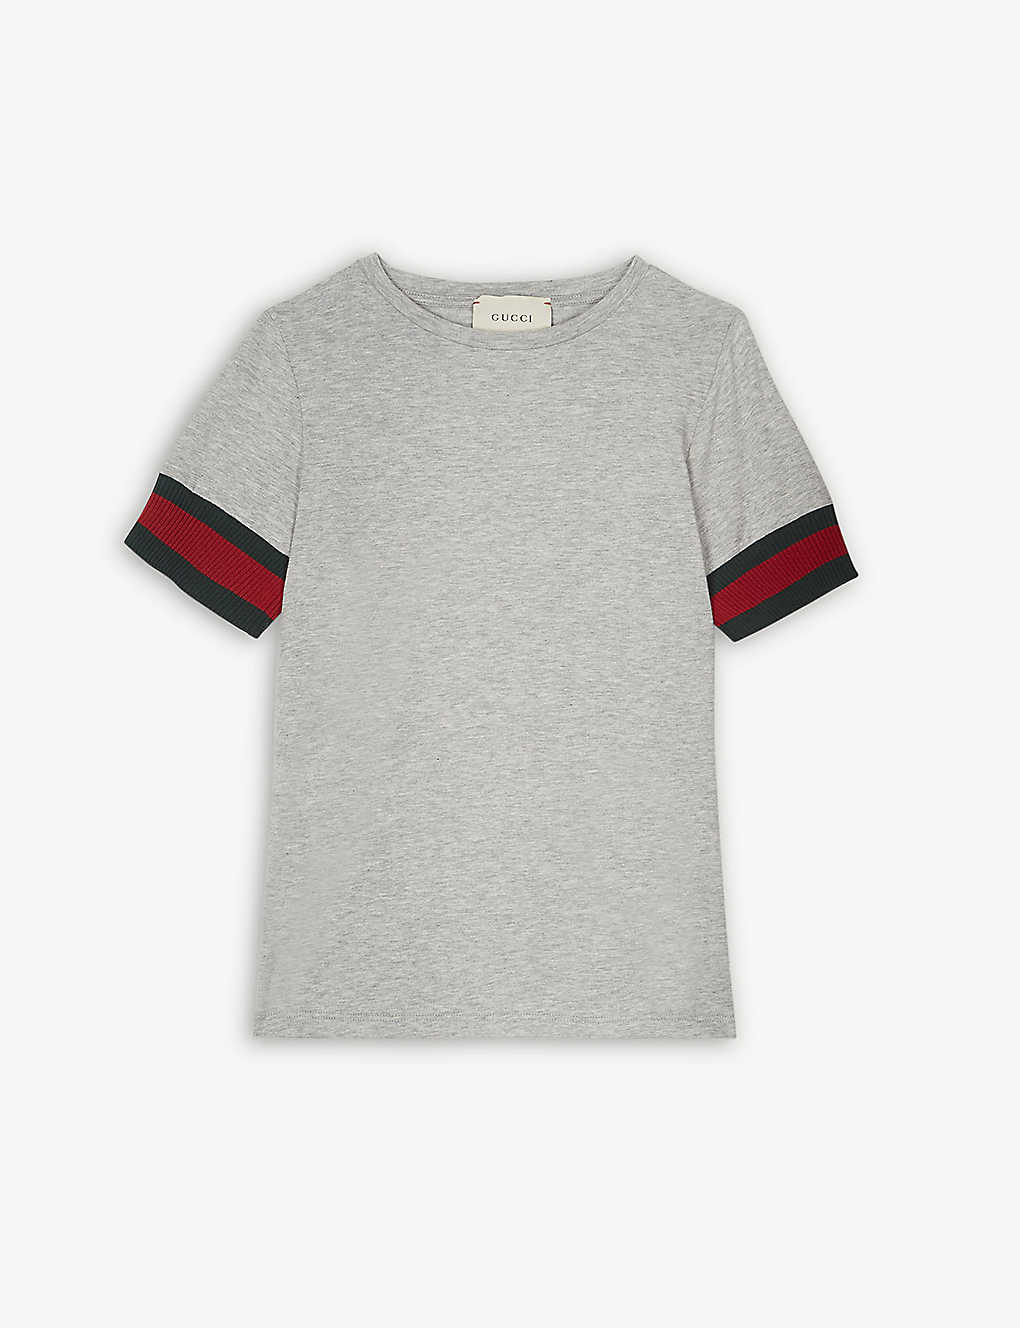 355f83027 GUCCI - Web stripe cotton T-shirt 4-12 years | Selfridges.com